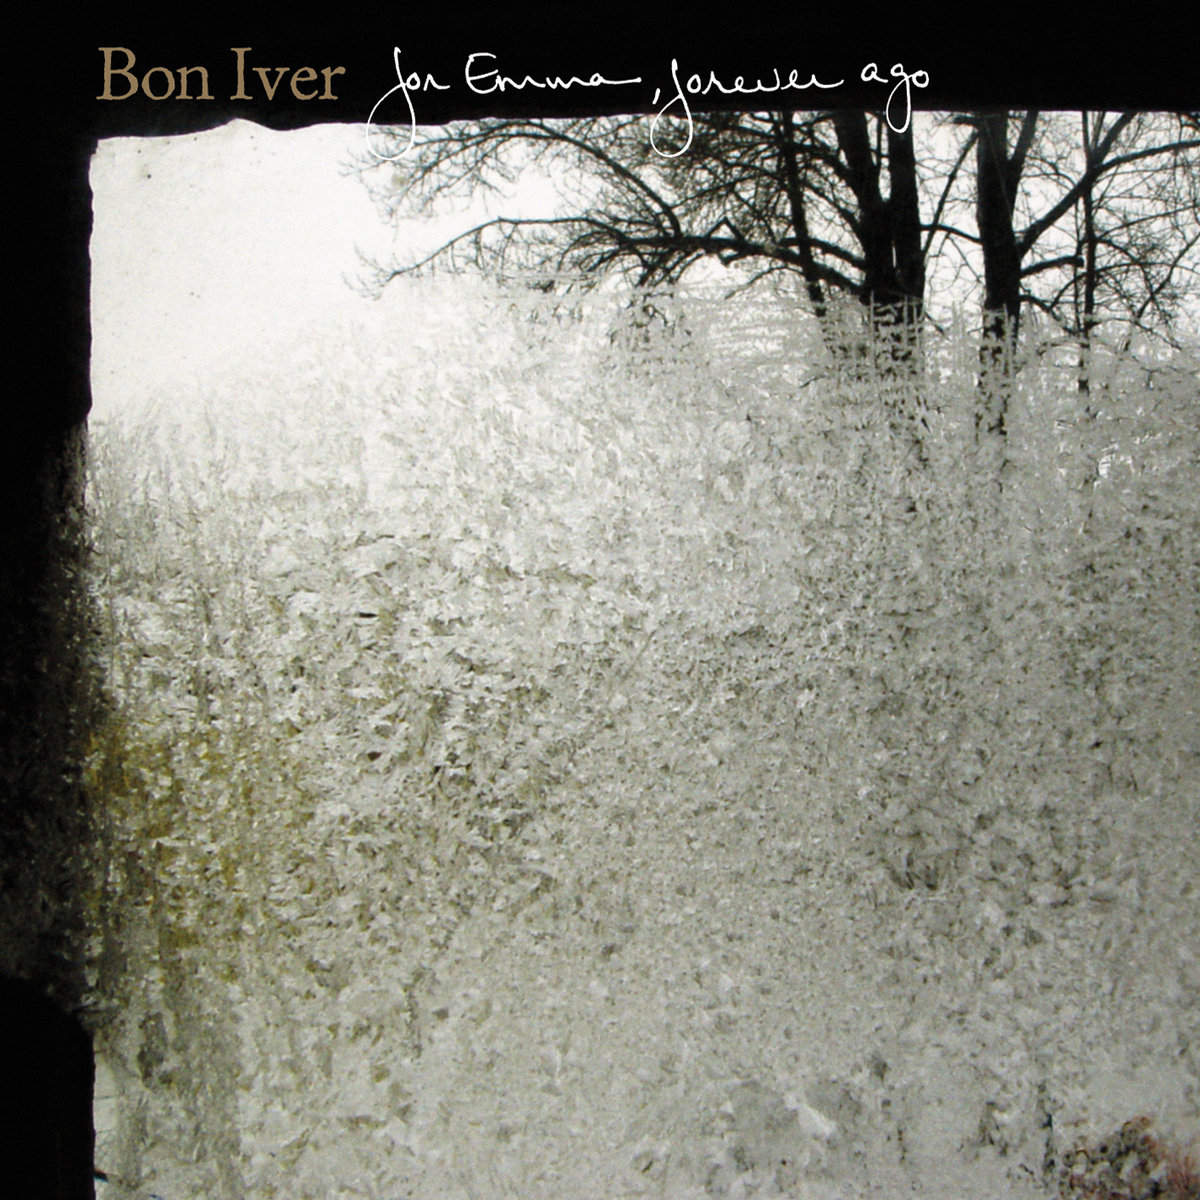 bon iver for emma The 10 Greatest Breakup Albums of This Century